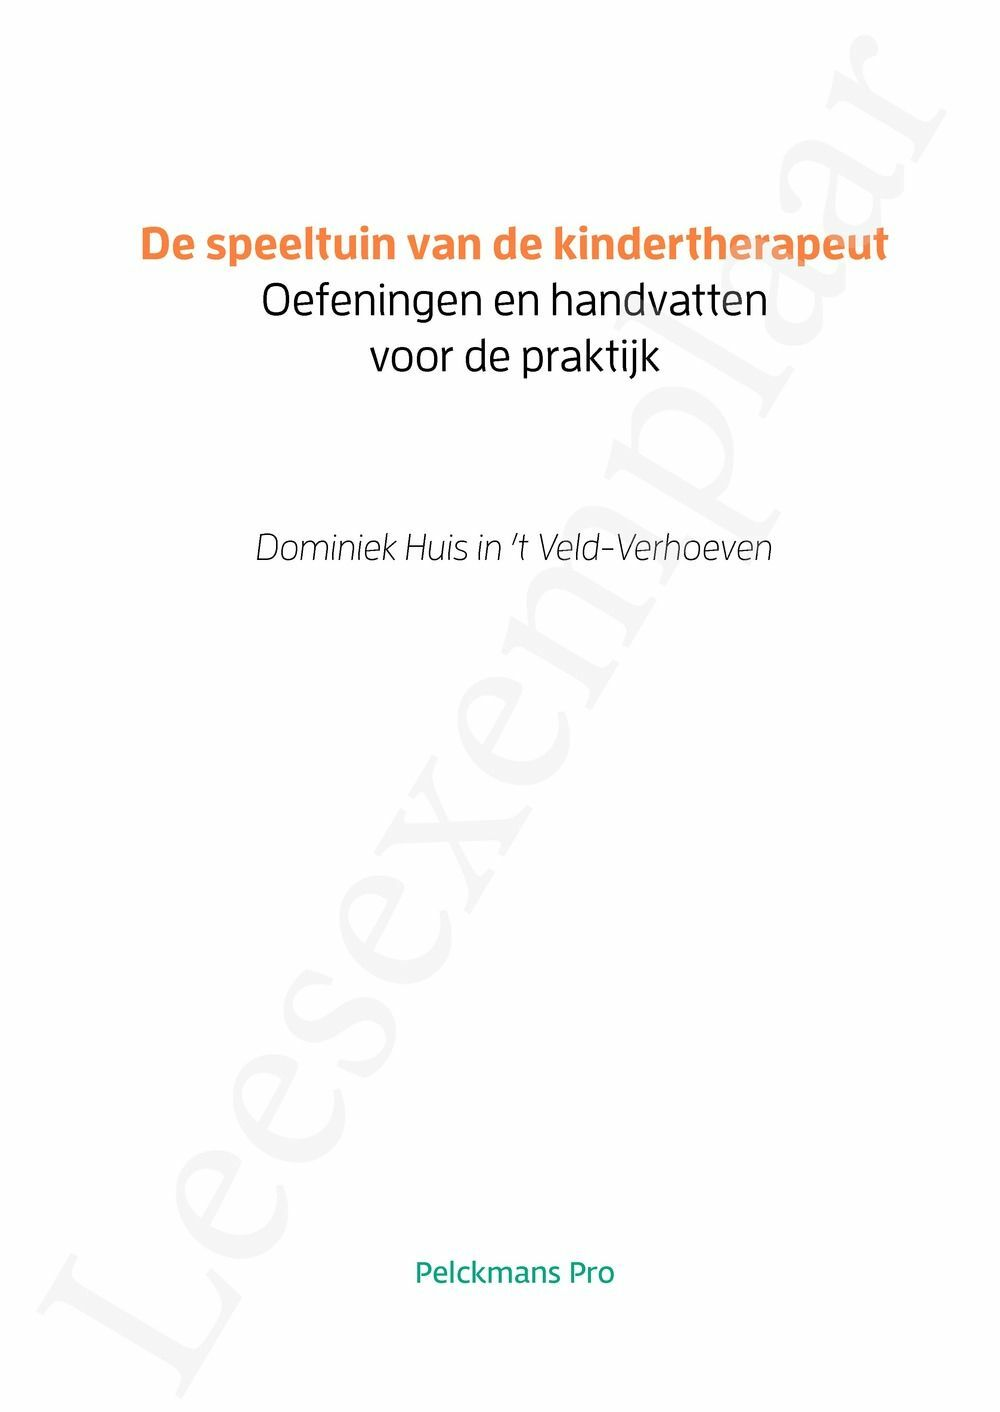 Preview: De speeltuin van de kindertherapeut